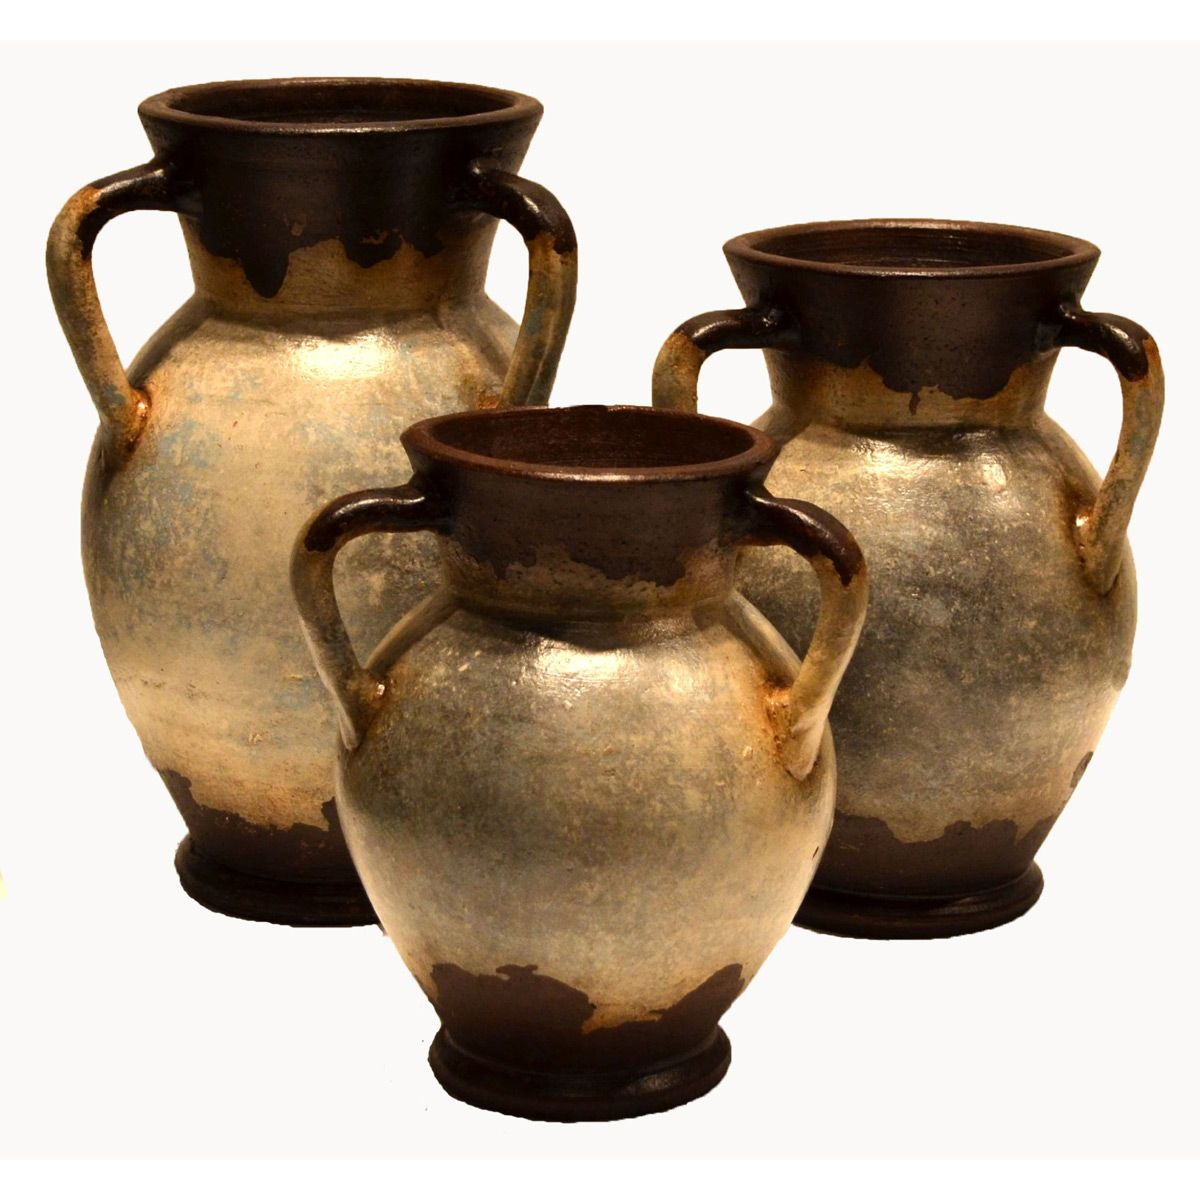 Cantaro Vases - Set of 3